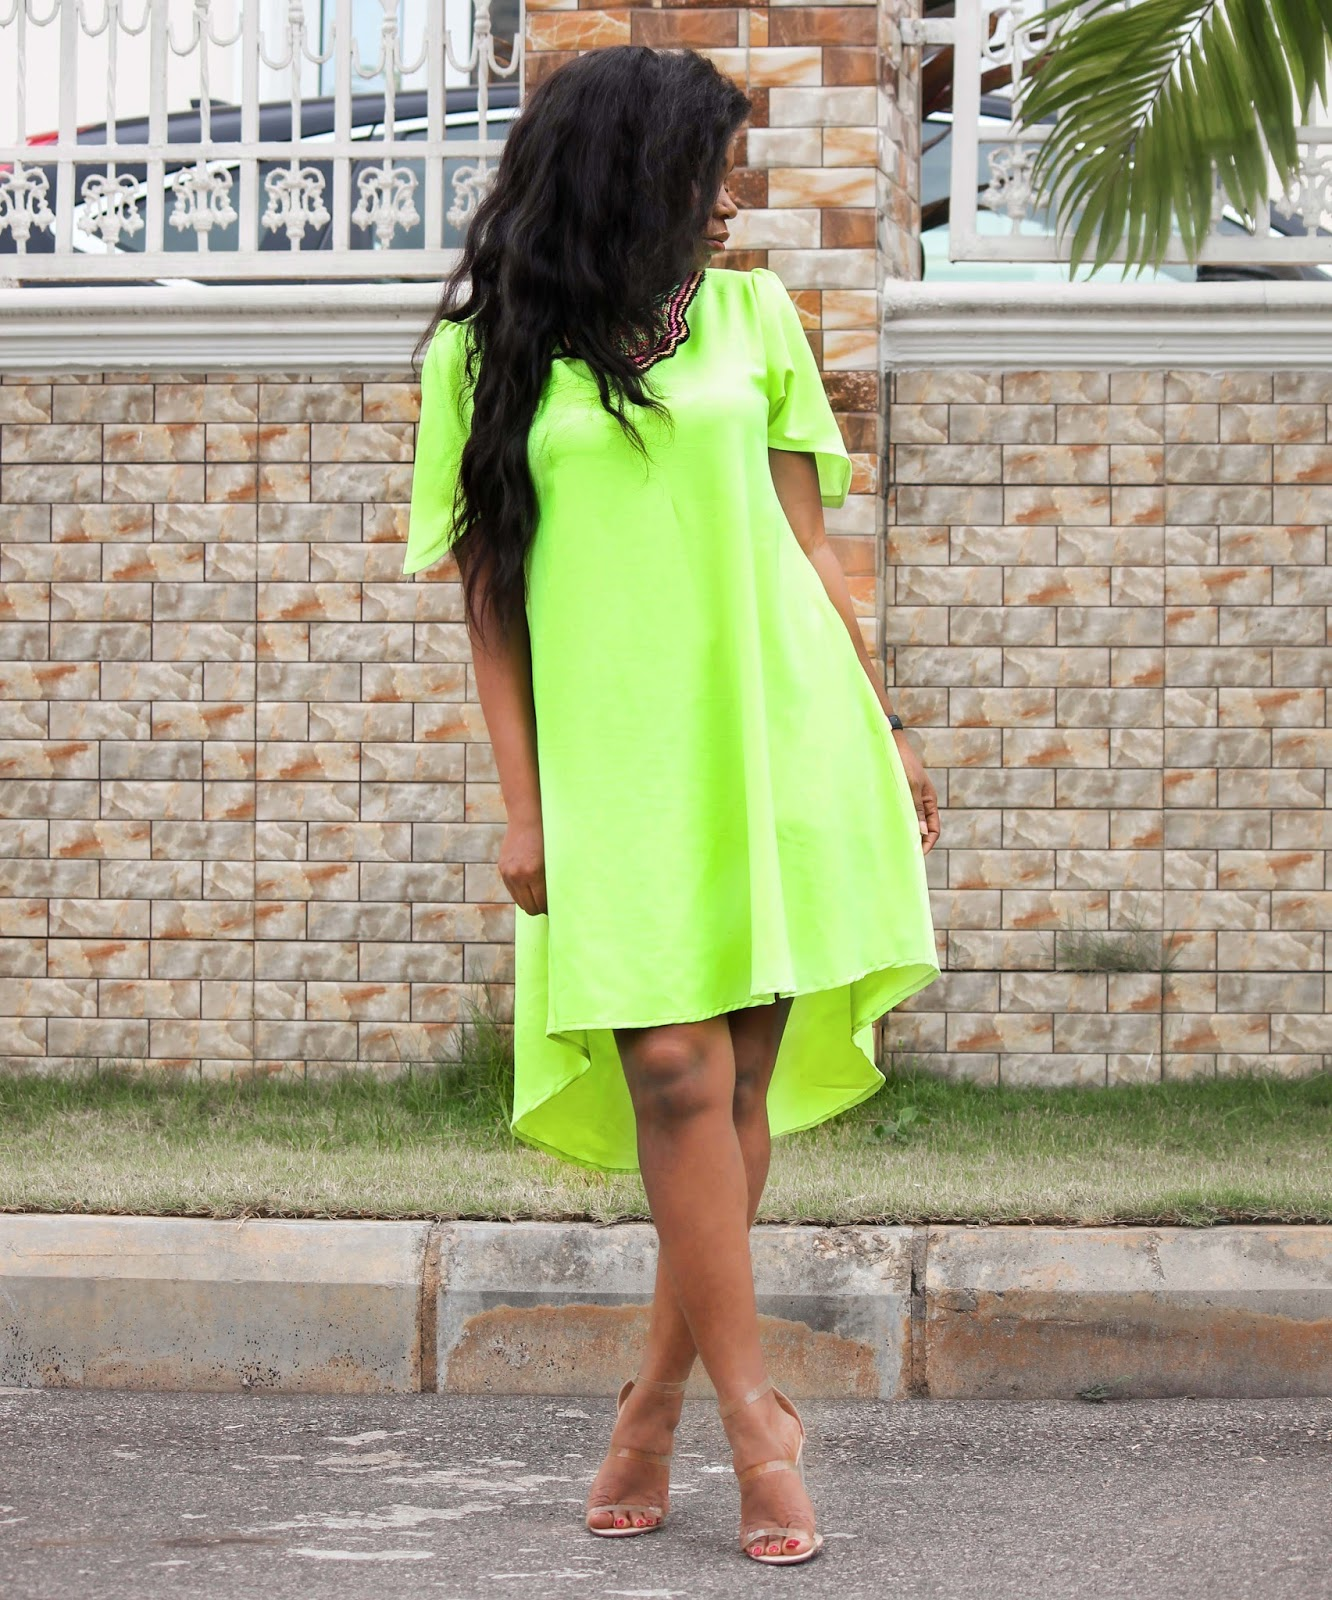 NEON HI-LO SHIFT DRESS - Neon Hi-Lo Shift Dress by Porshher